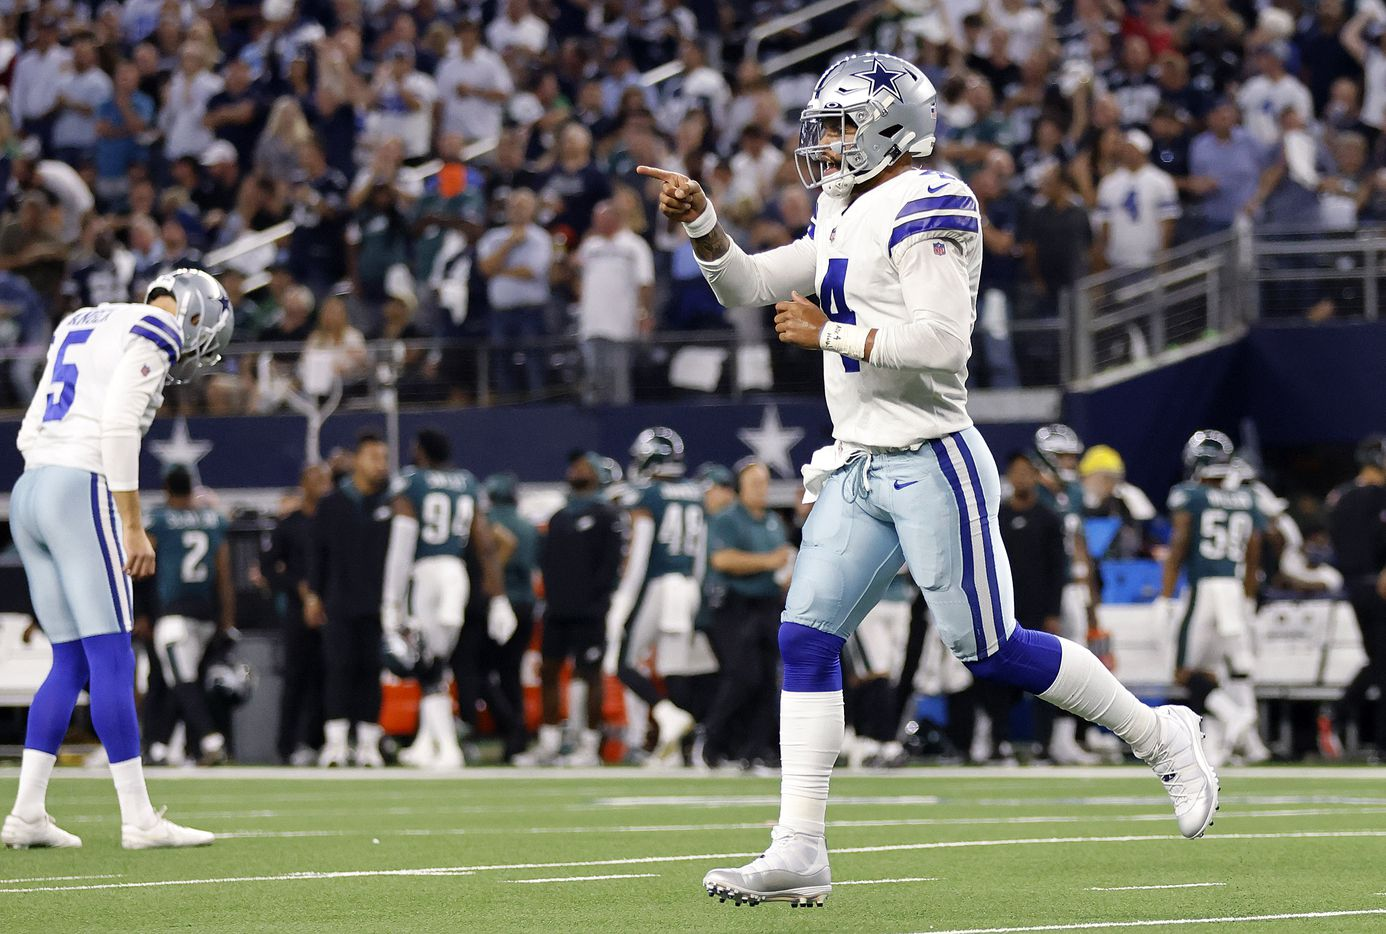 Dallas Cowboys quarterback Dak Prescott (4) runs to the sideline after they scored a first quarter touchdown against the Philadelphia Eagles at AT&T Stadium in Arlington, Monday, September 27, 2021. (Tom Fox/The Dallas Morning News)